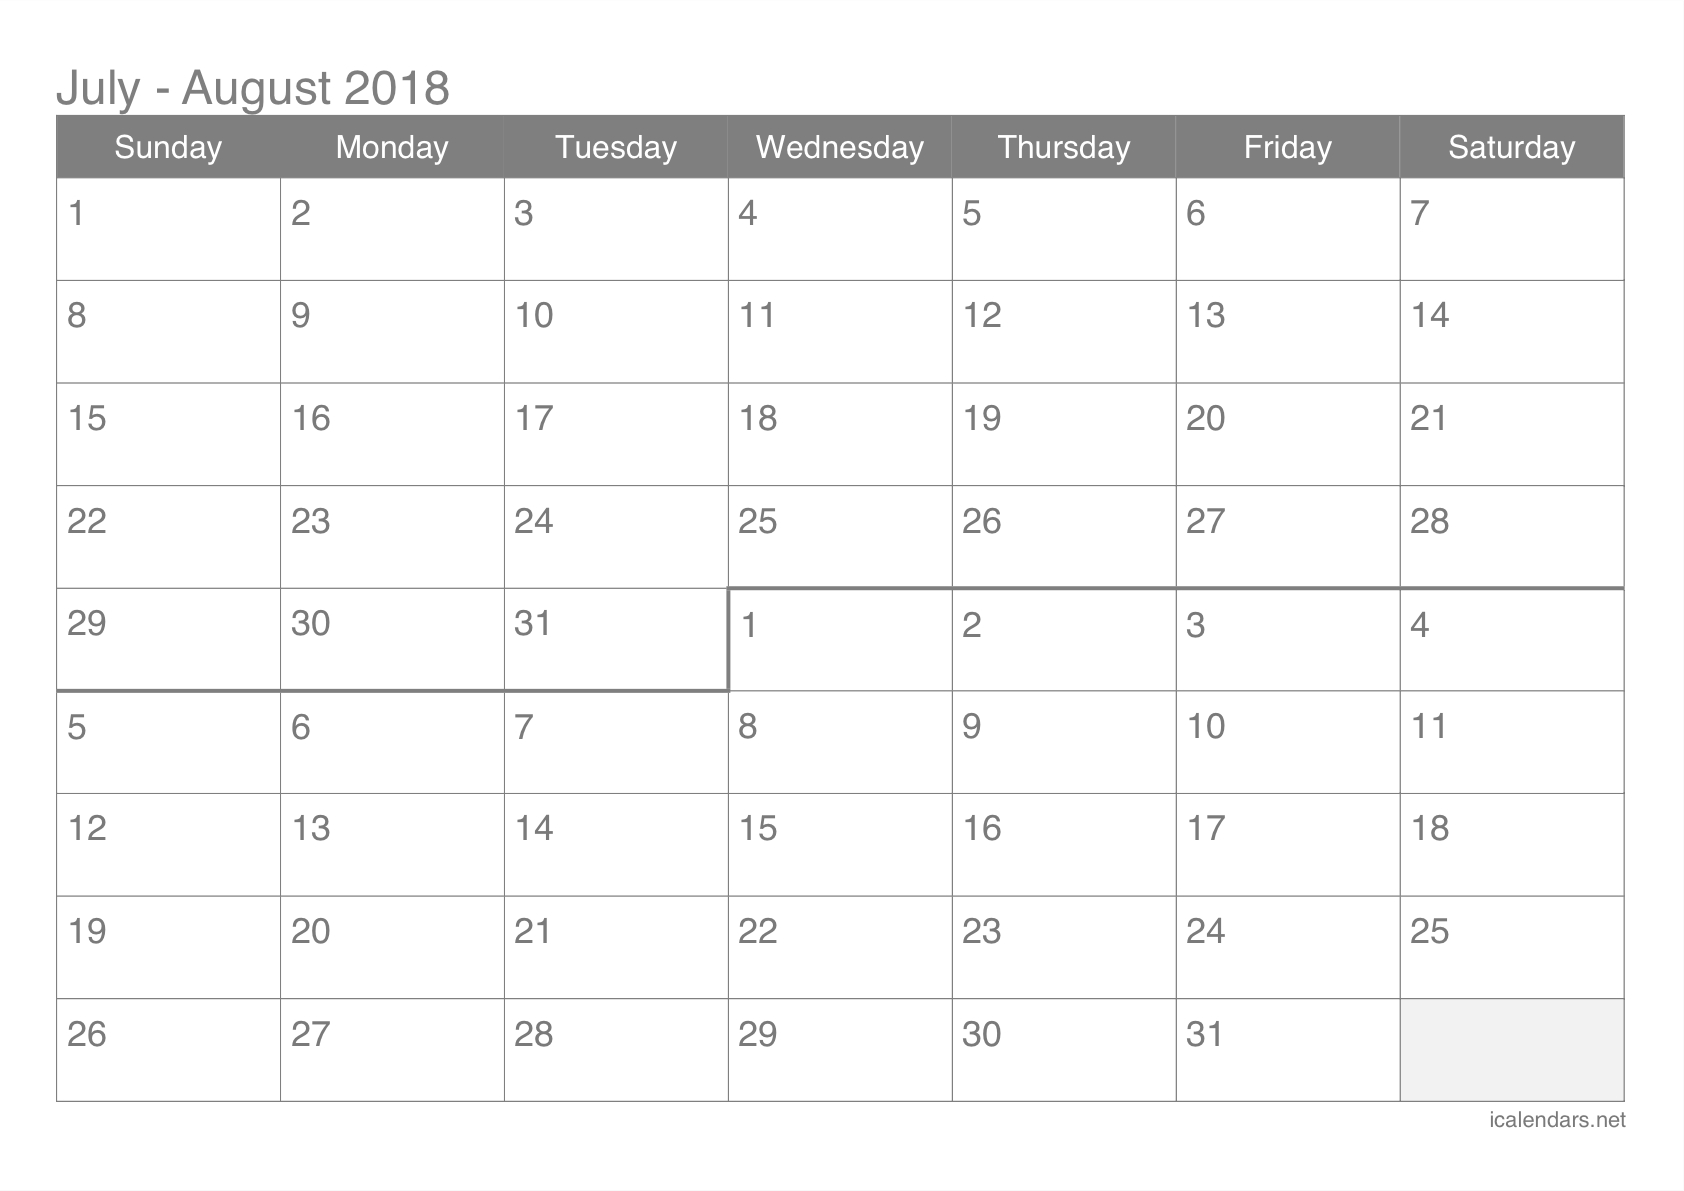 July And August 2018 Printable Calendar - Icalendars  July And August Blank Calendar